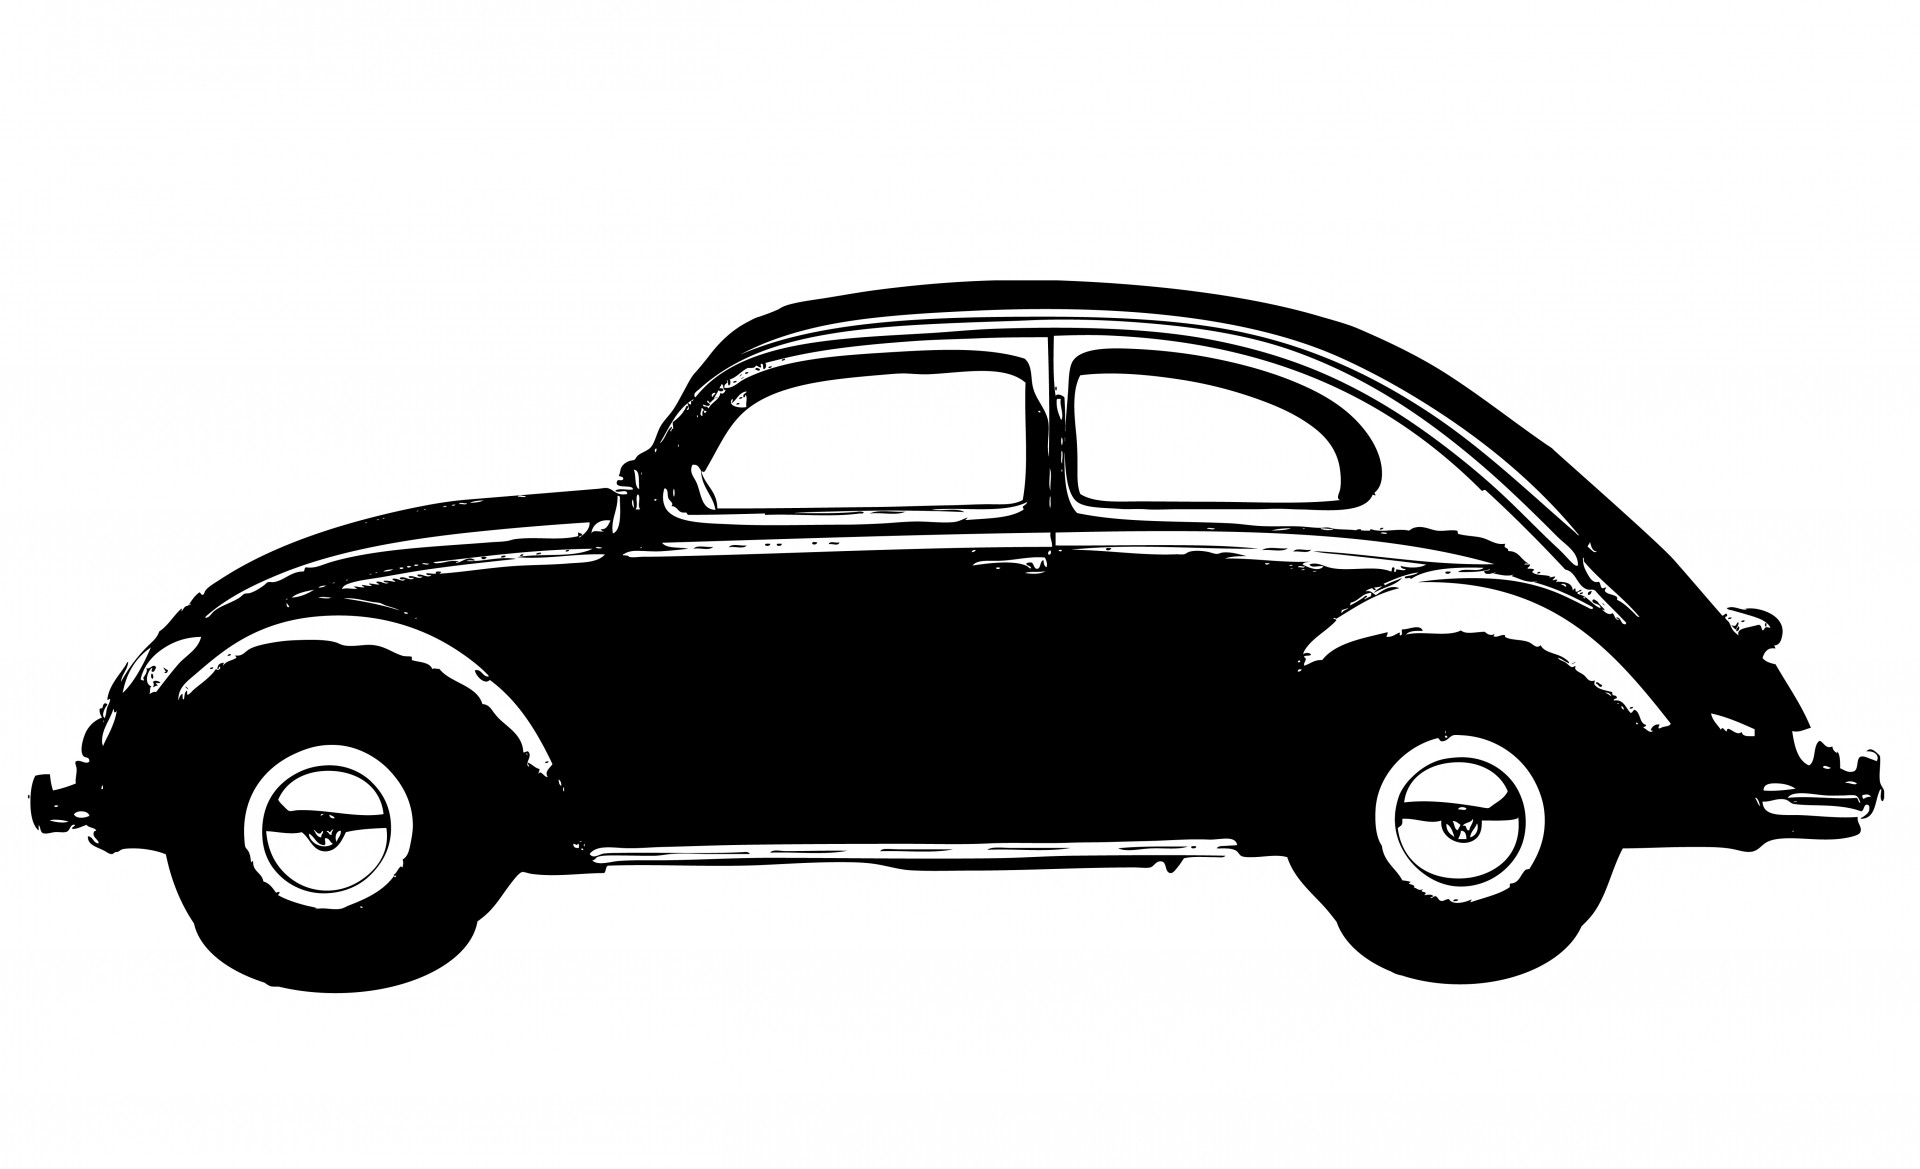 Stock photos car clipart clip art free stock Vintage Car Black Clipart Free Stock Photo - Public Domain Pictures clip art free stock